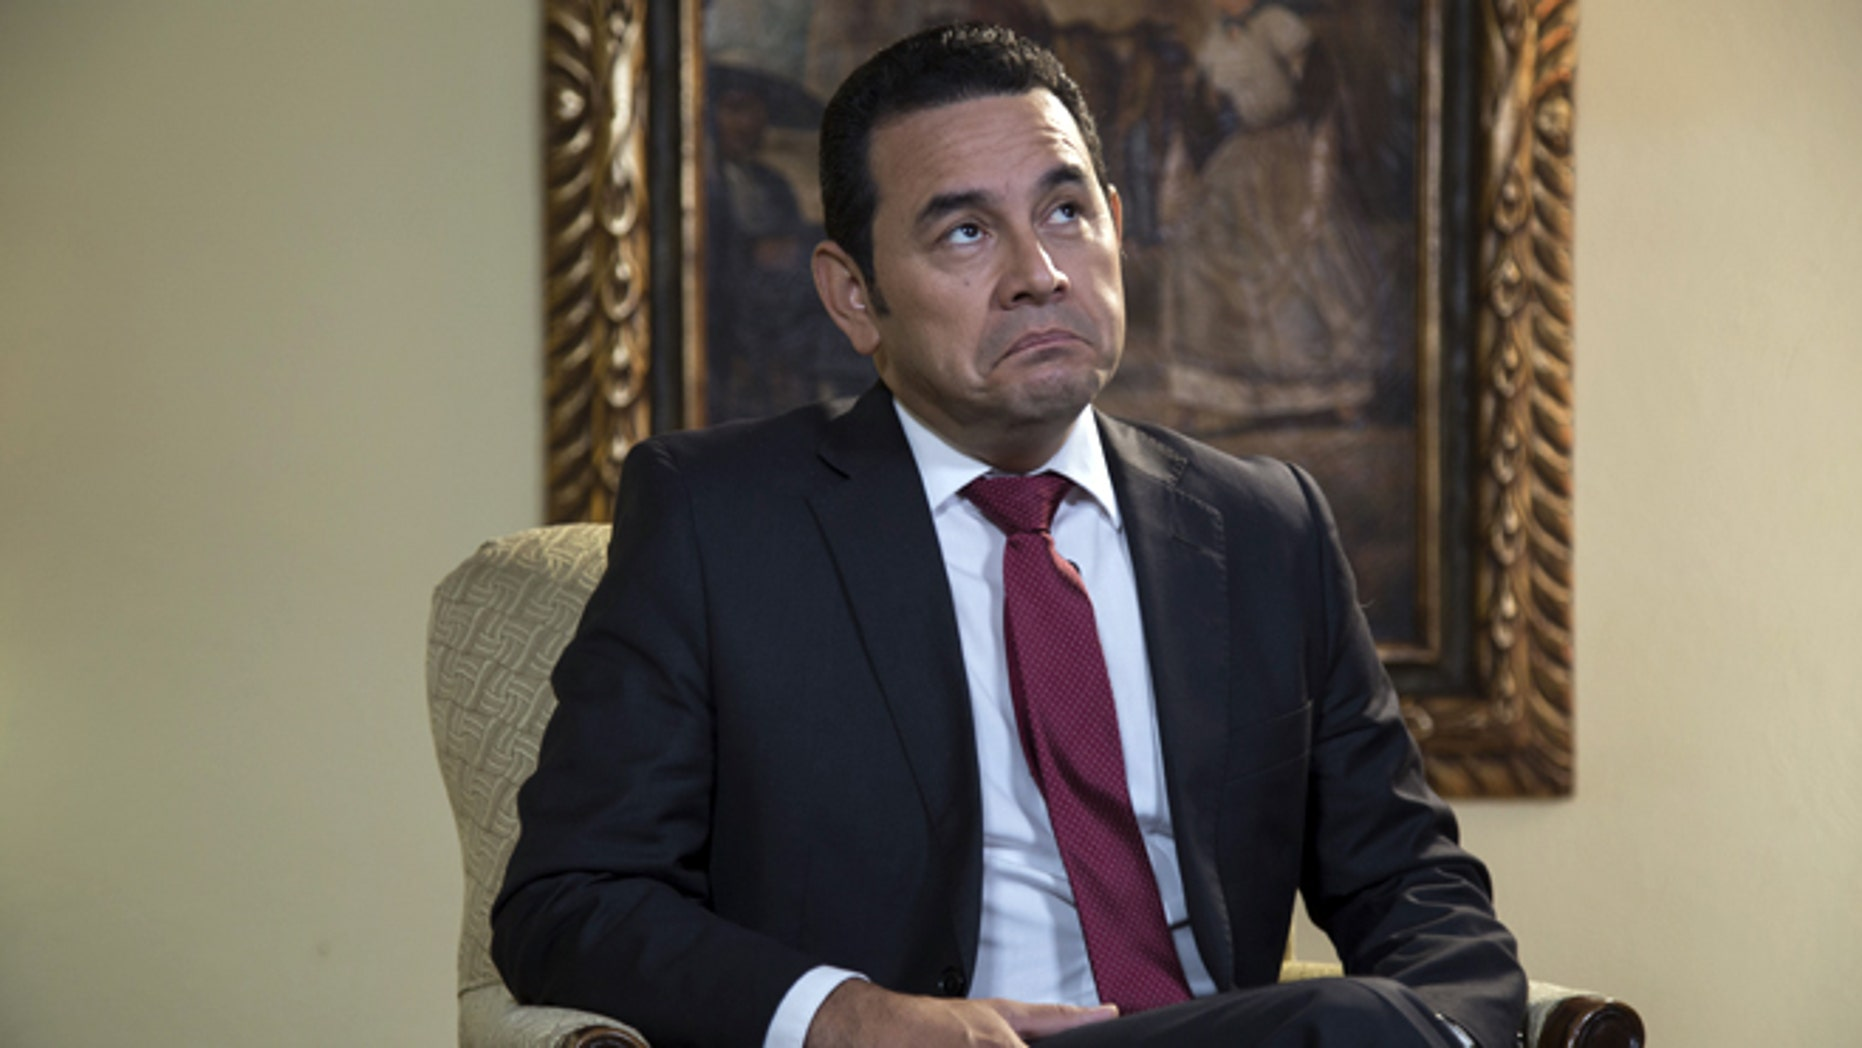 Guatemala's President-elect Jimmy Morales, a former comedian, in a Nov. 3, 2015 photo.